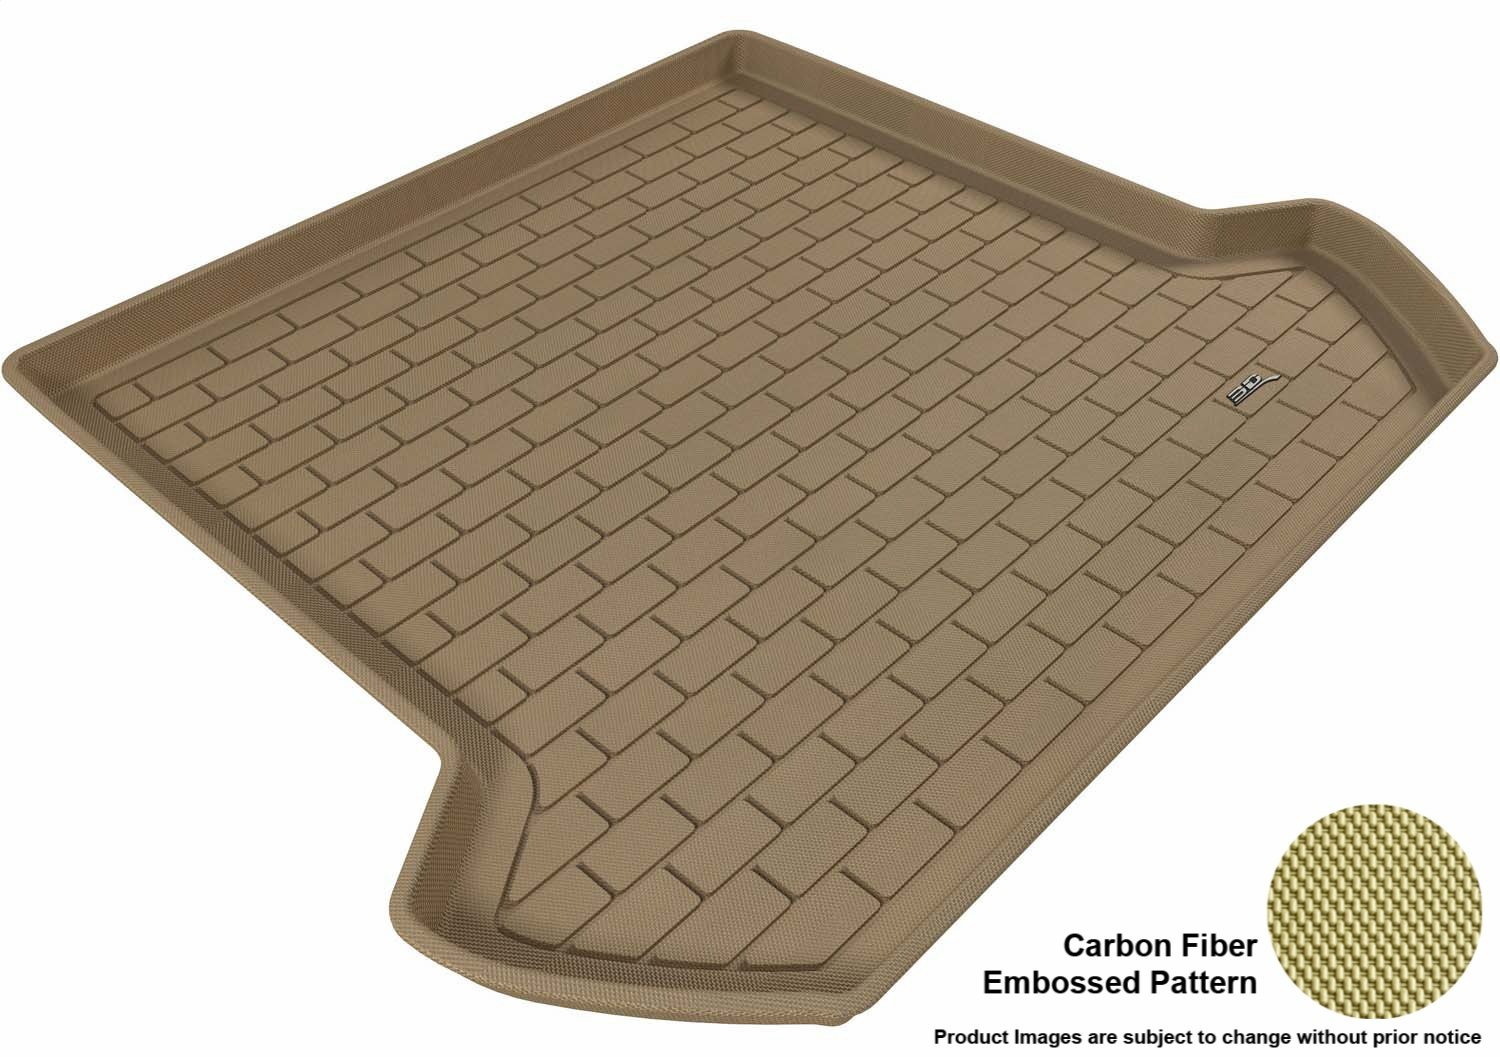 3D MAXpider Third Row Custom Fit All-Weather Floor Mat for Select Volvo XC90 Models L1VV00431502 Kagu Rubber Tan